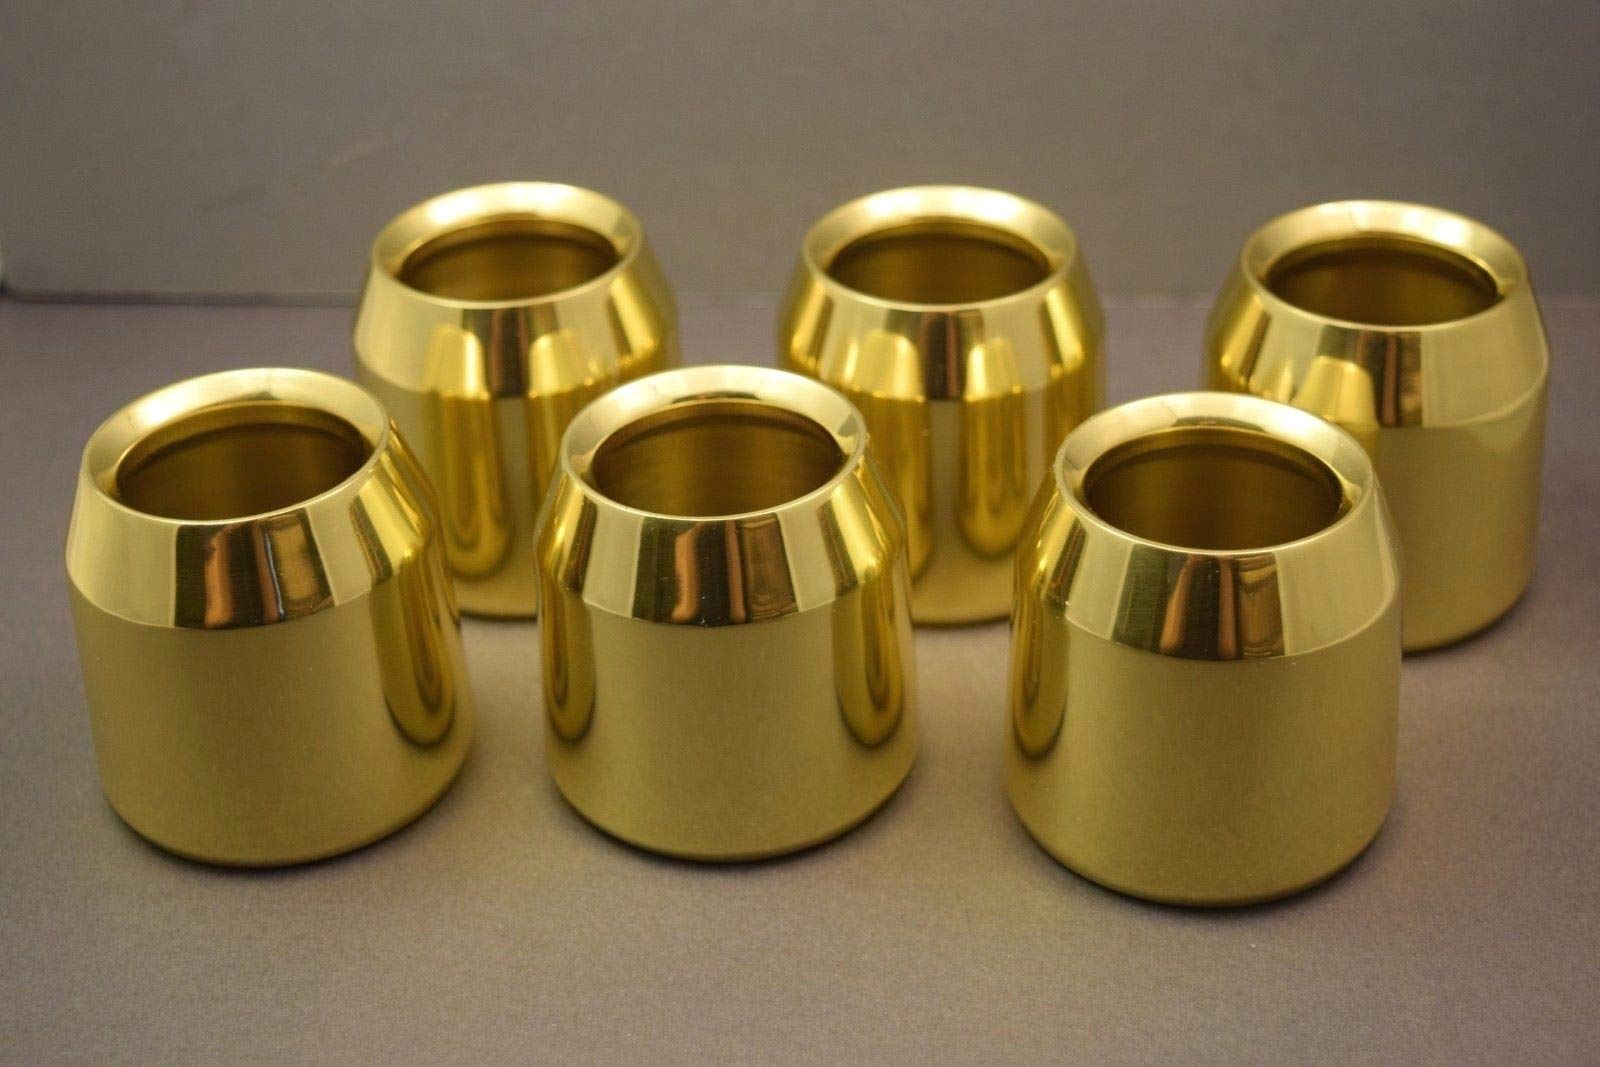 Set of 6 Solid Brass Church Candle Followers - 2'' Size